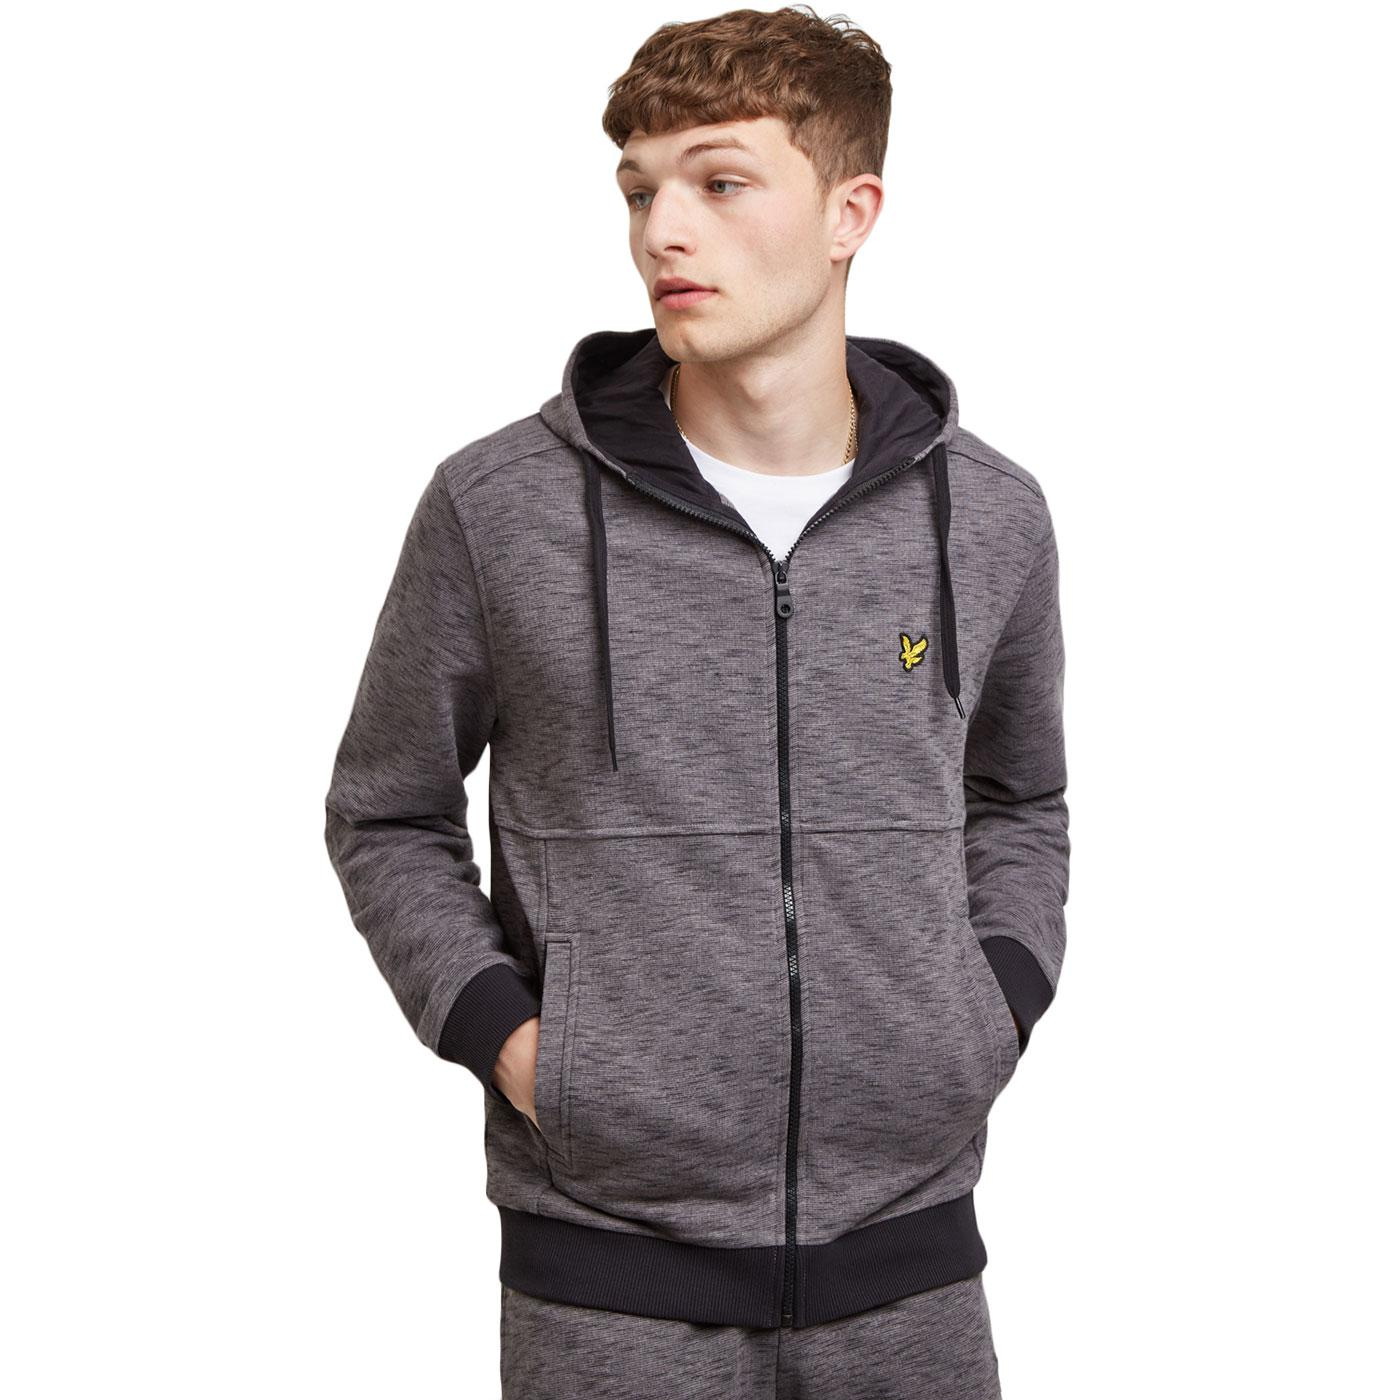 LYLE & SCOTT Retro Space Dye Zip Hooded Track Top